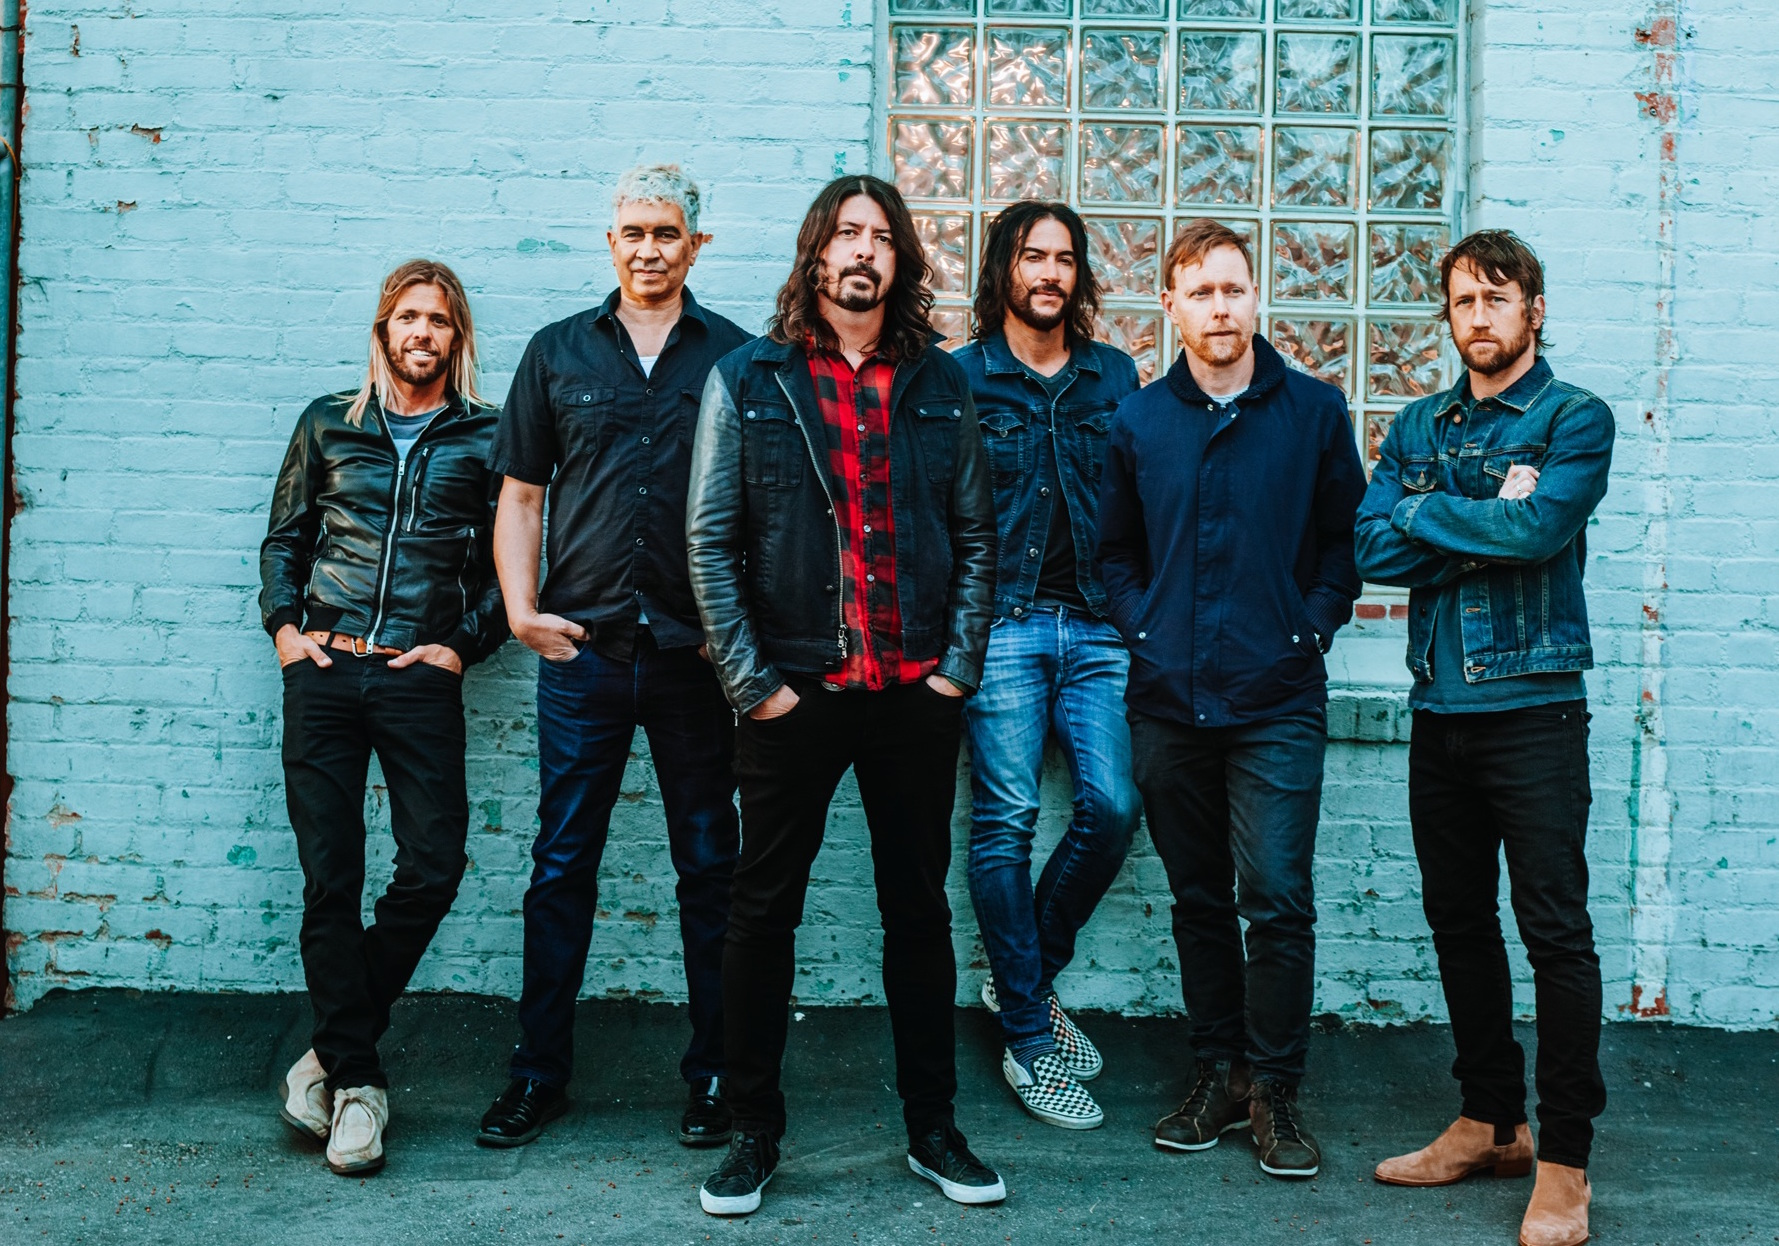 FOO FIGHTERS ANNOUNCES NEW ALBUM NEXT WEEK- DETAILS INSIDE